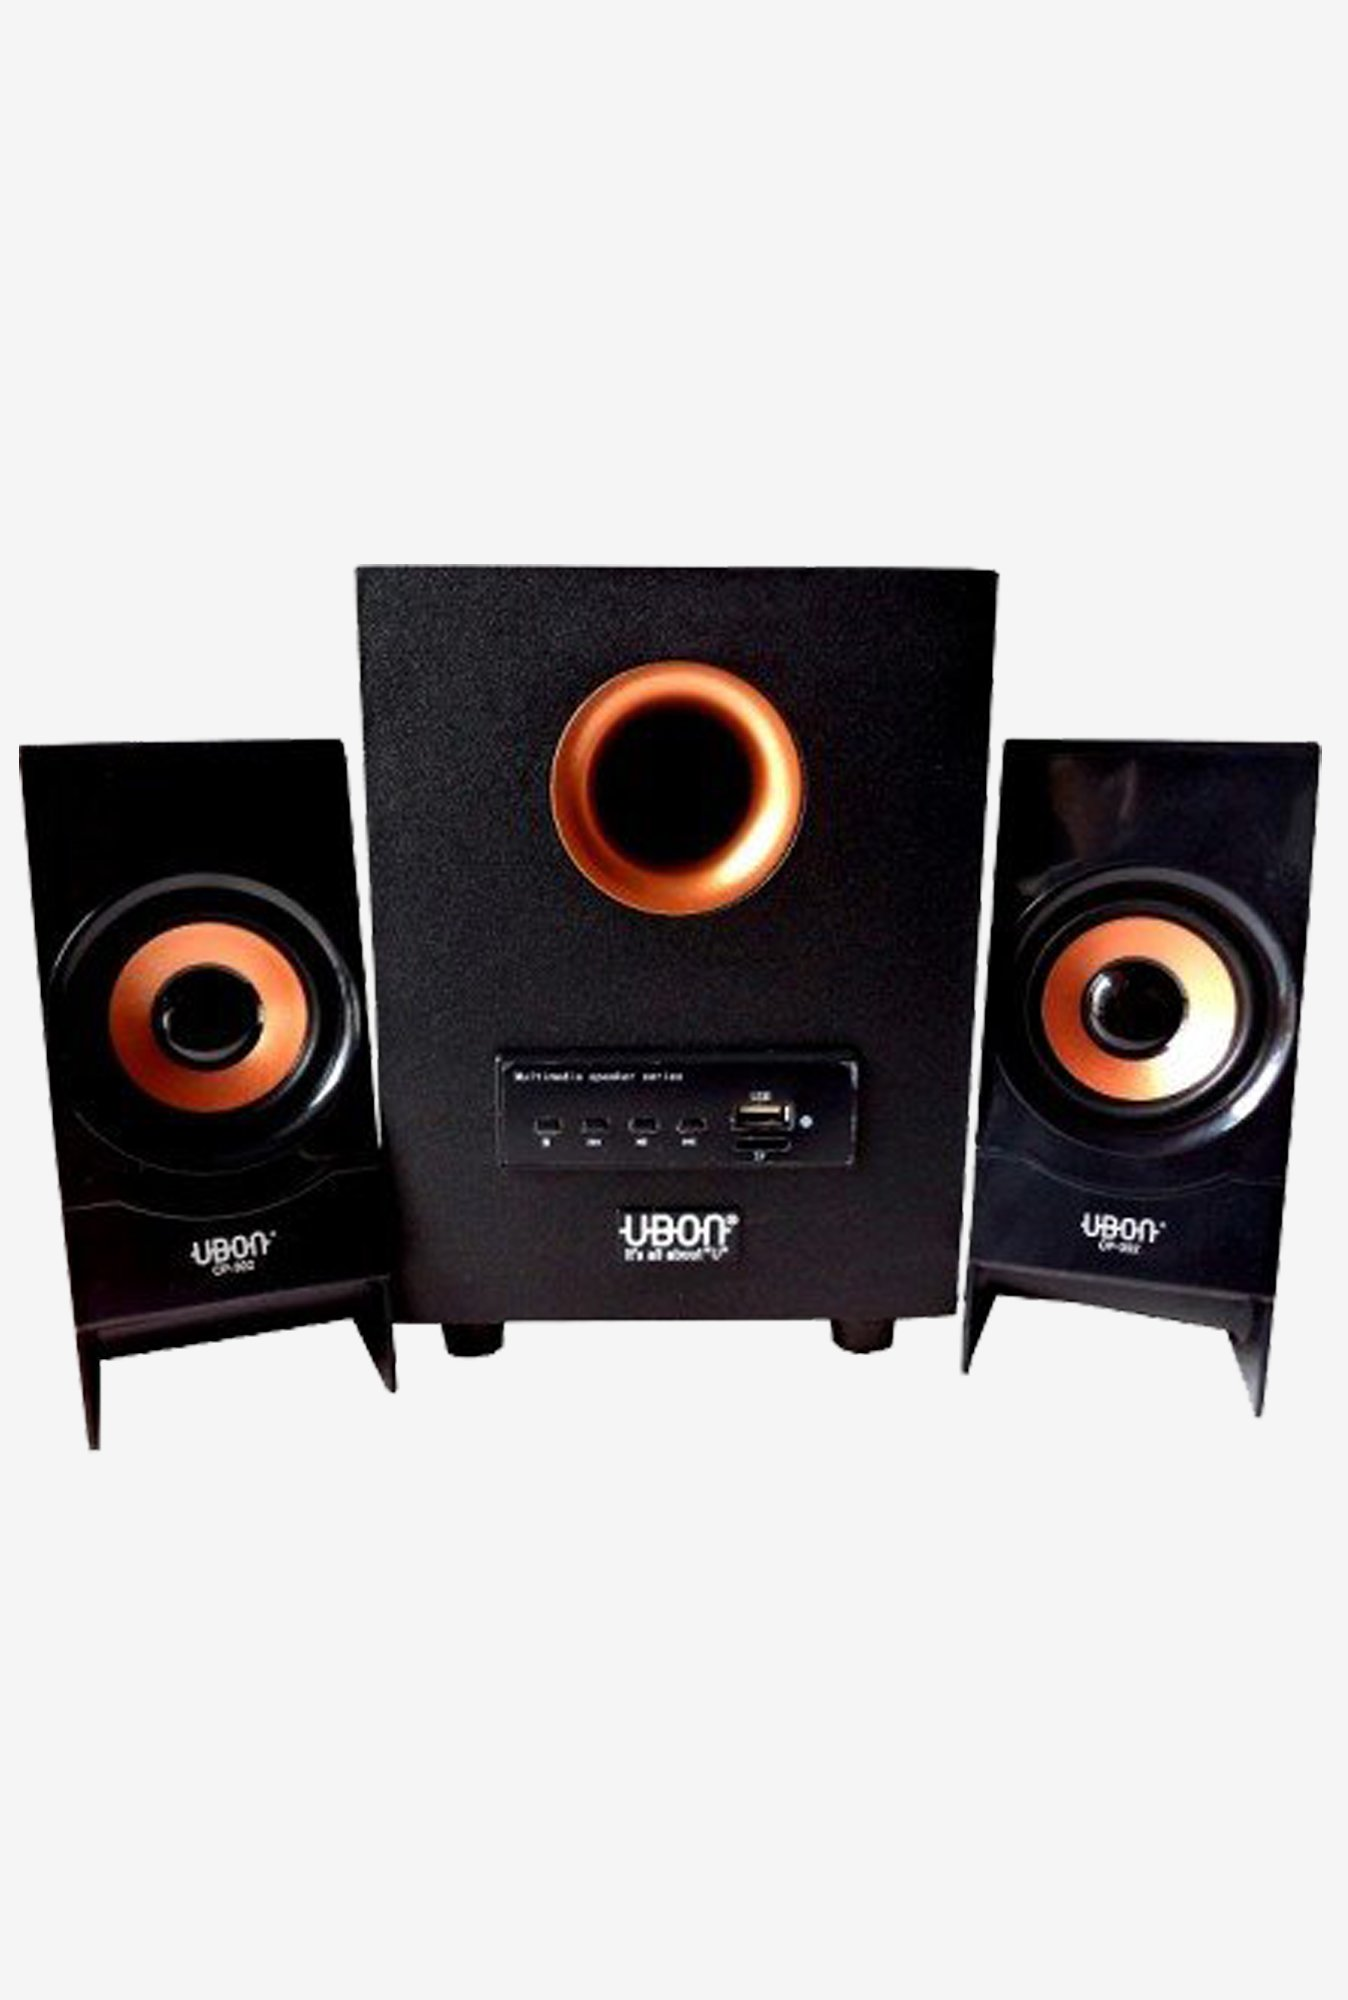 Generic Ubon CP-302 2.1 Wood Multimedia Home Theater (Black)